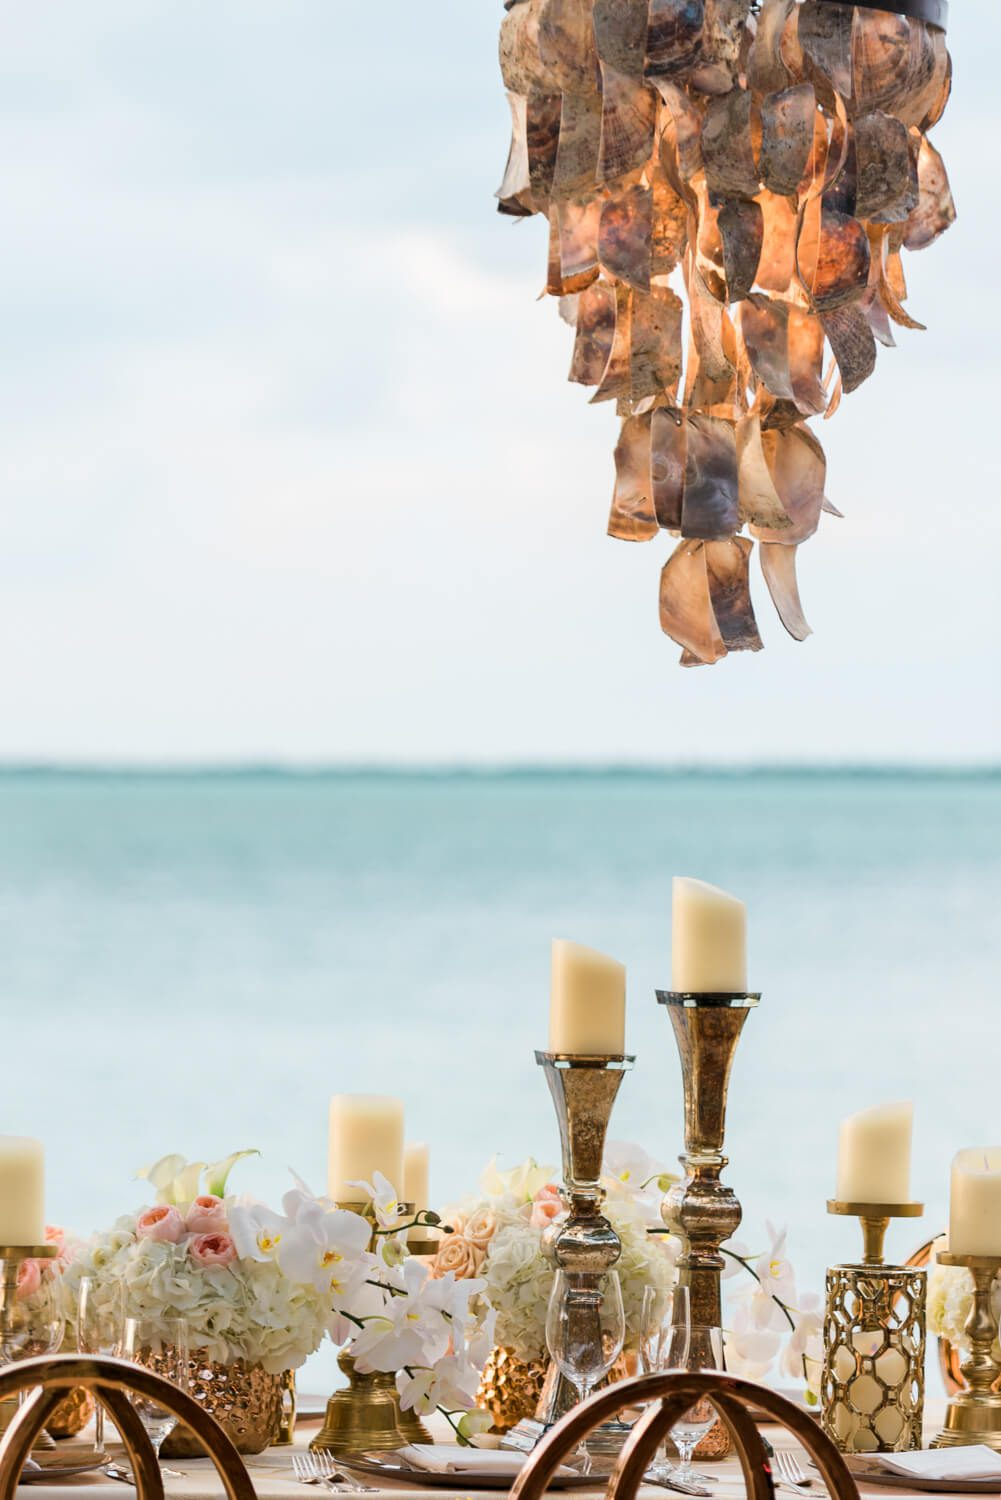 Freas Wedding Photography Key West 33 - Florida Keys Wedding Photographer - Little Palm Island Wedding